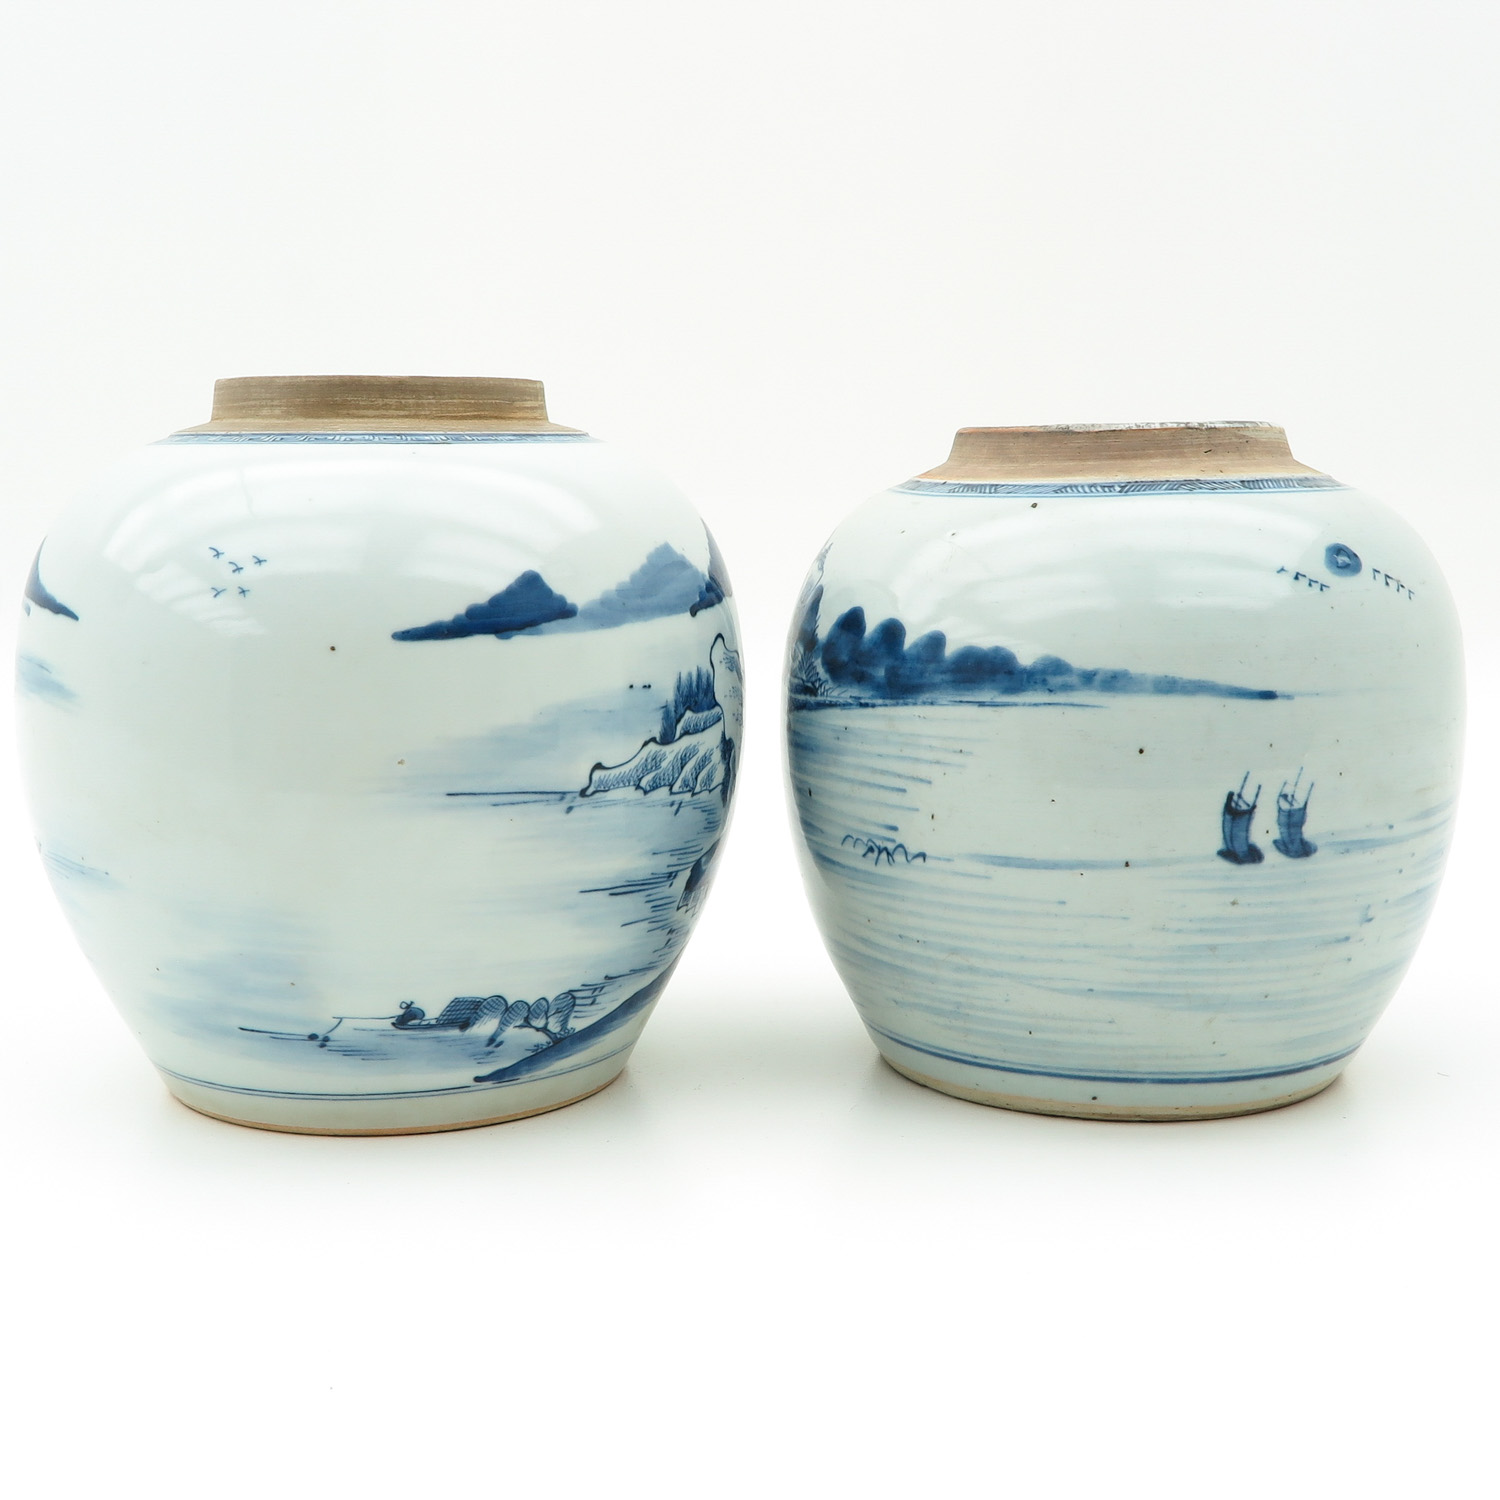 Lot 7008 - A Pair of Blue and White Ginger Jars